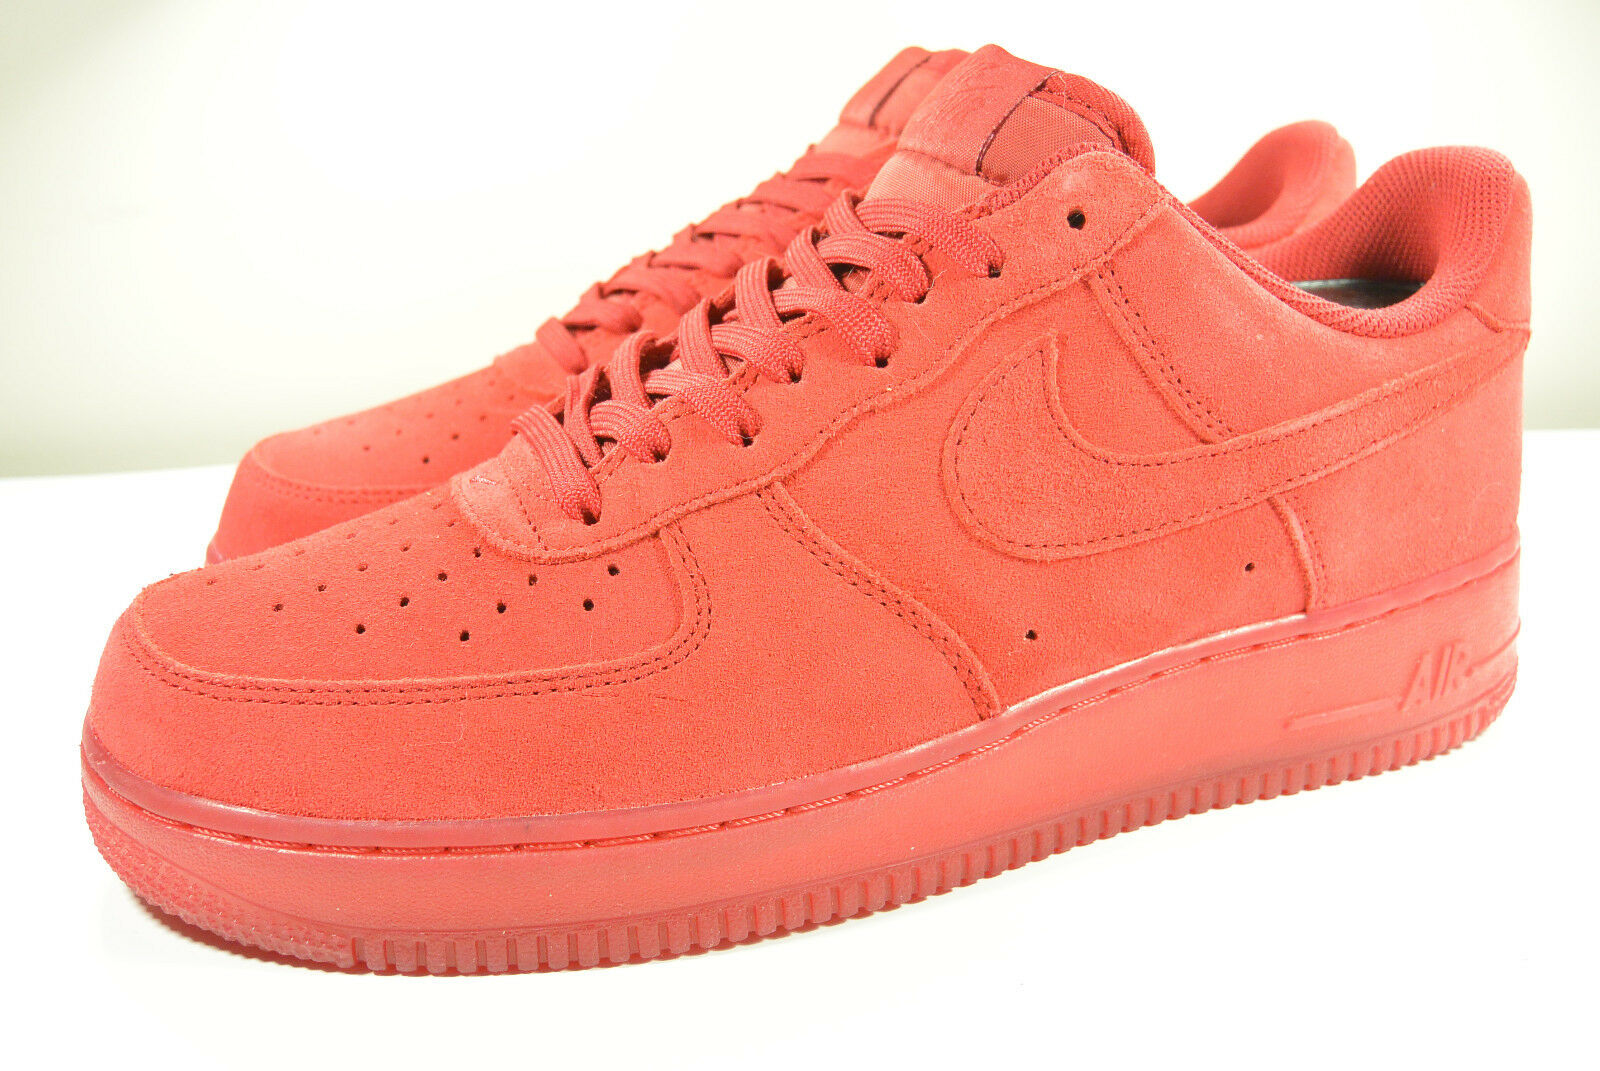 DS 2018 NIKE FORCE 1 LV8 Gamuza Gimnasio Rojo AIR Gamuza LV8 13 SUPREME HYPERFUSE Co. Japón Cacao MAX a0786b